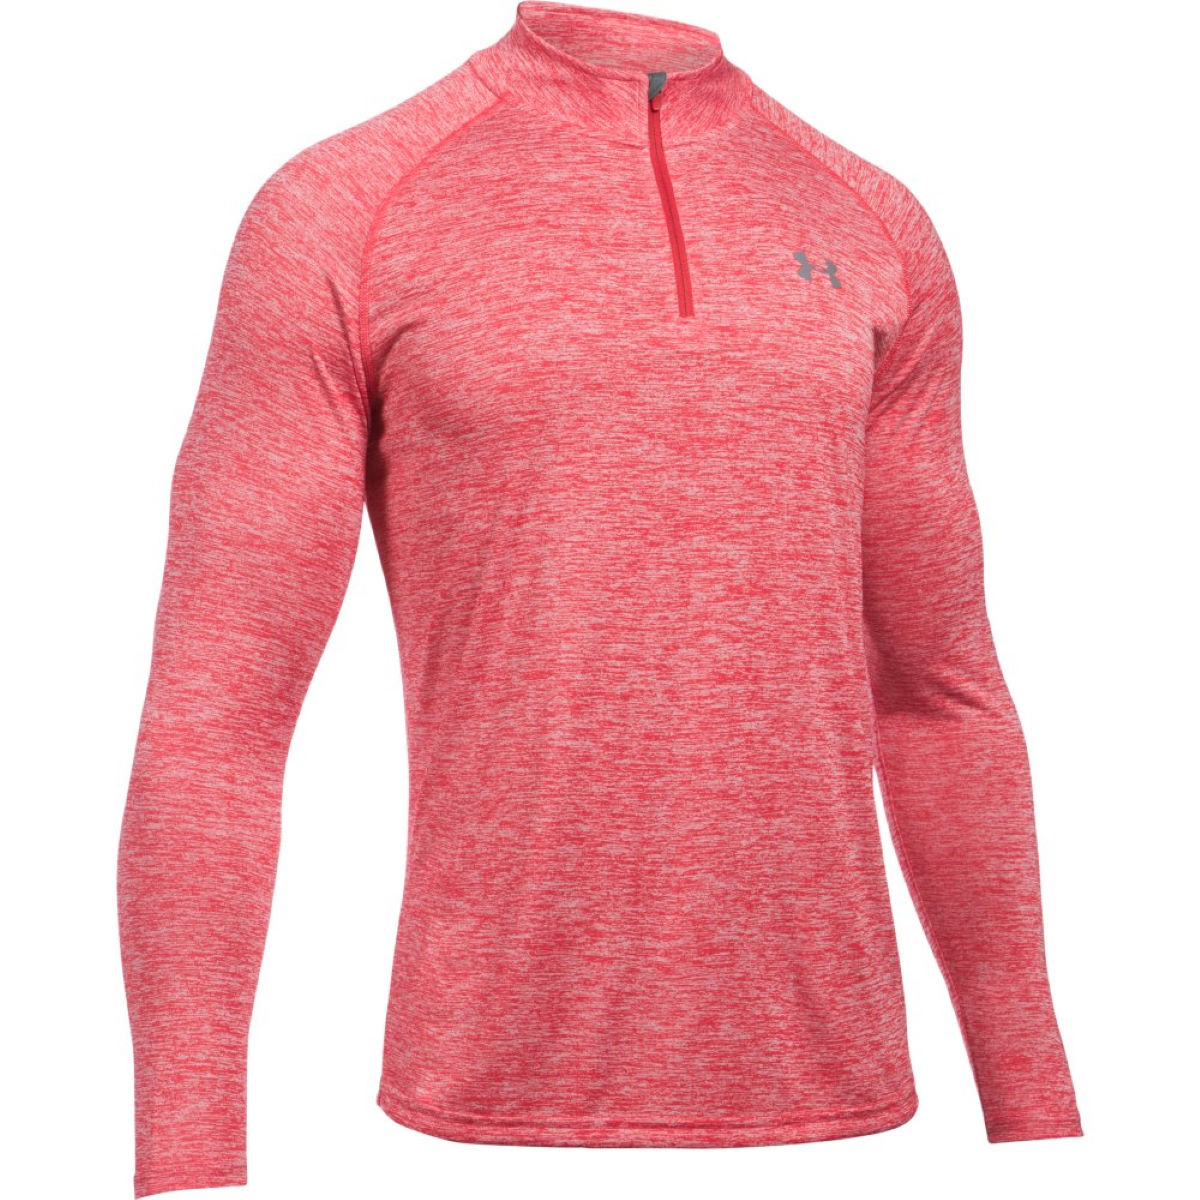 Maillot Under Armour Tech (fermeture zippée 1/4, PE17) - XL Red/Graphite Hauts de running à manches longues